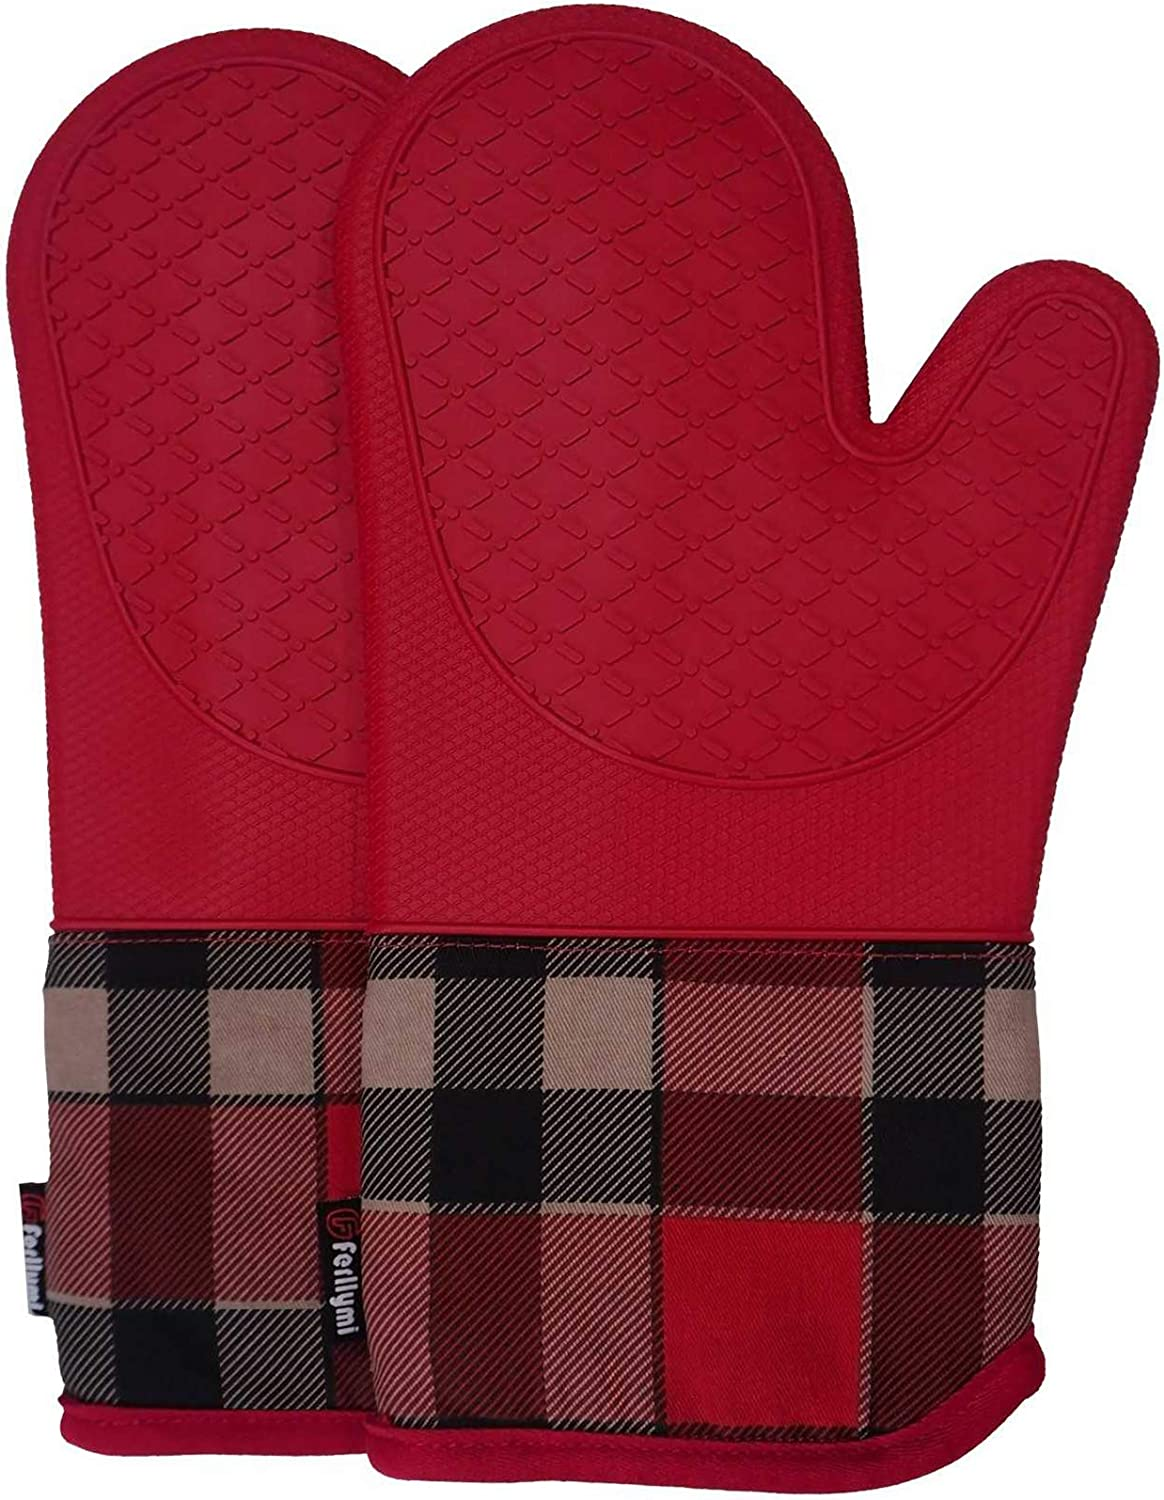 Heat Resistant Silicone Shell Kitchen Oven Mitts for 500 Degrees with waterproof, Set of 2 Oven Gloves with cotton lining for BBQ Cooking set Baking Grilling Barbecue Microwave Machine Washable Red-1